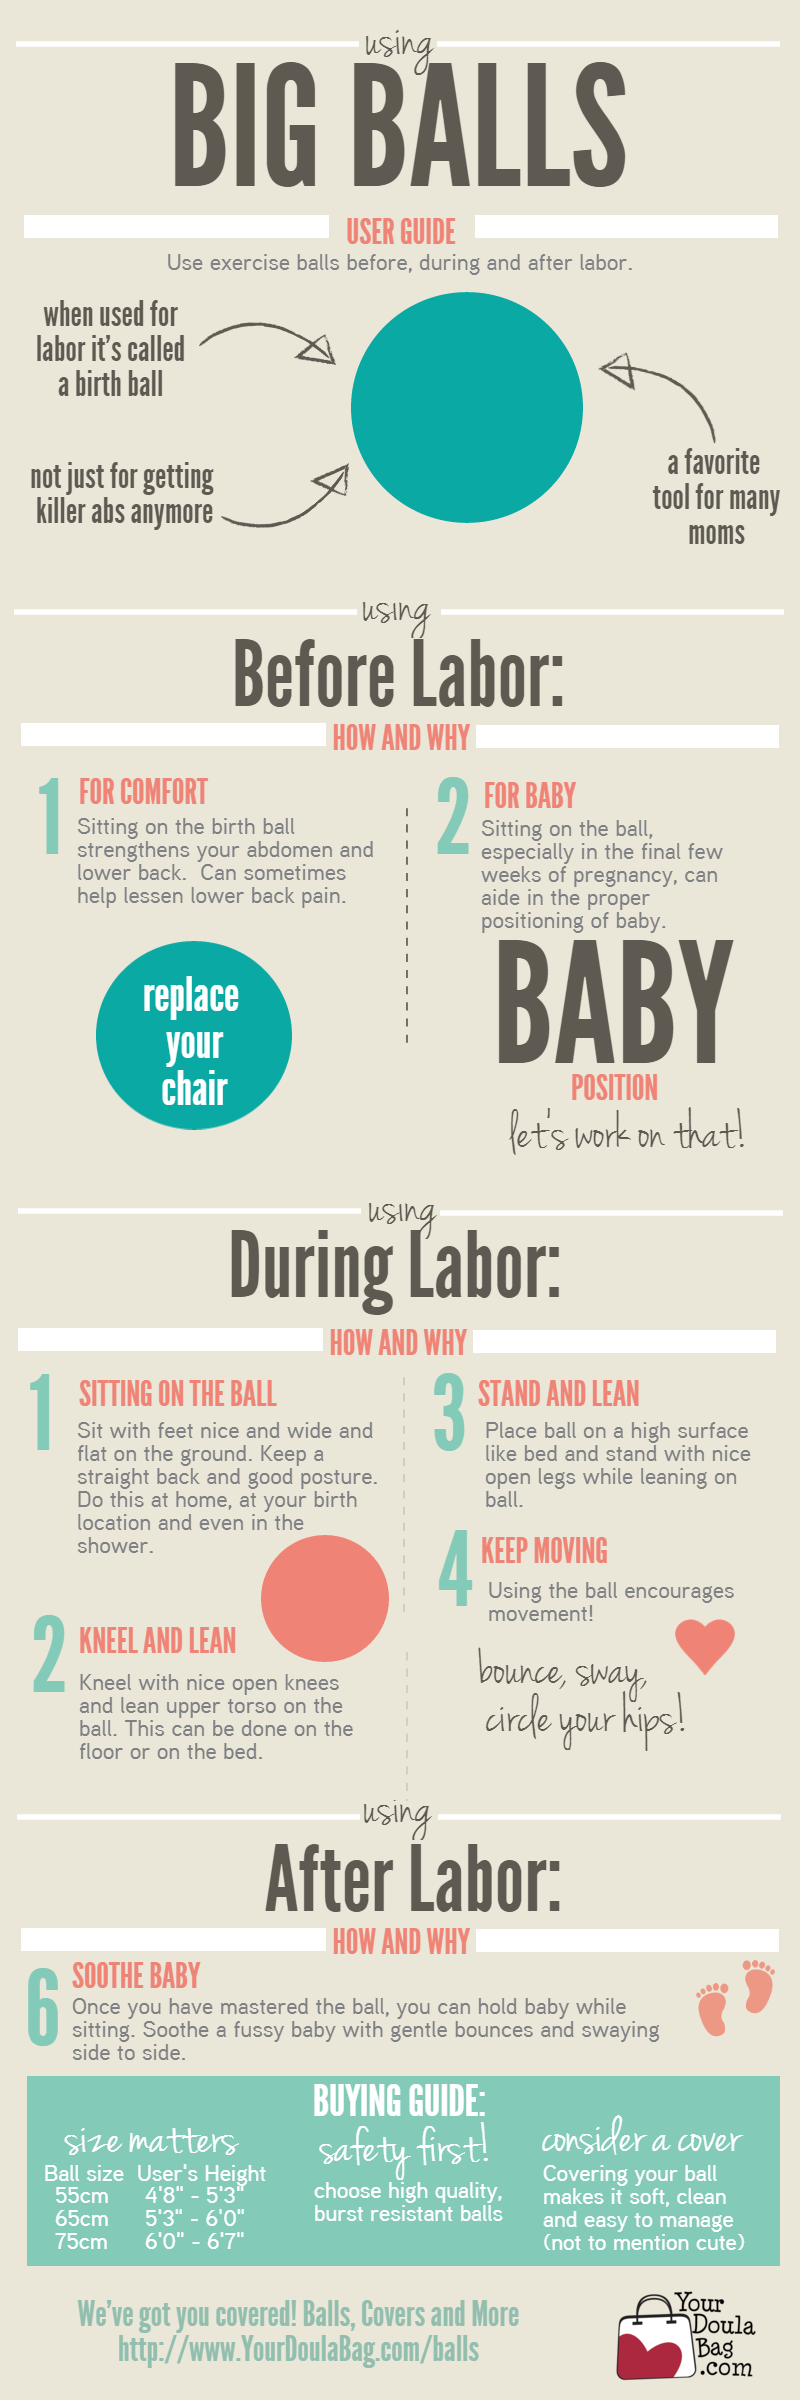 Birth Balls and Labor - How To Use Infographic